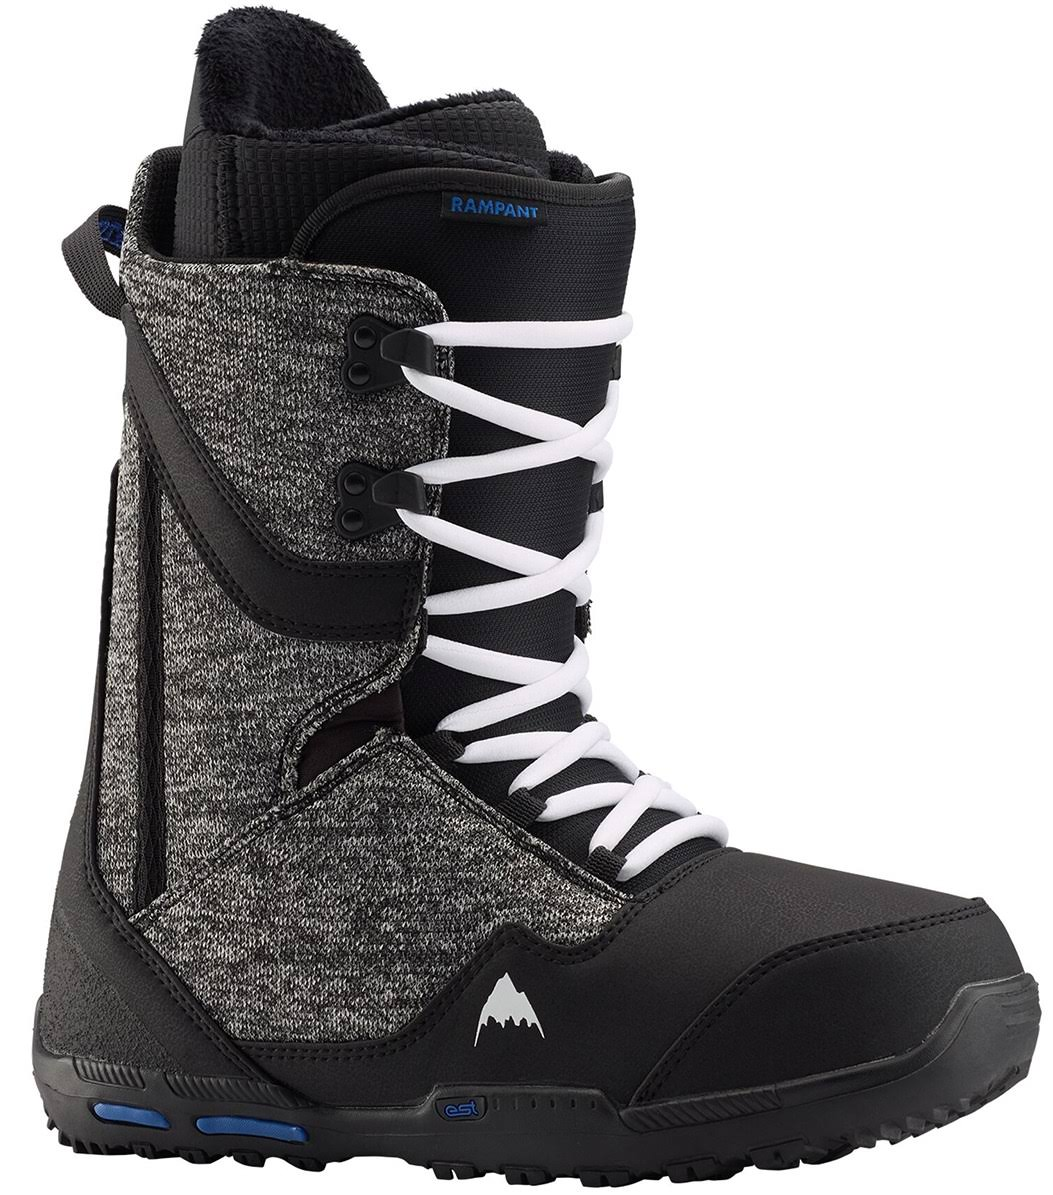 Burton Men's Rampant Snowboard Boot, Black / Blue, 12